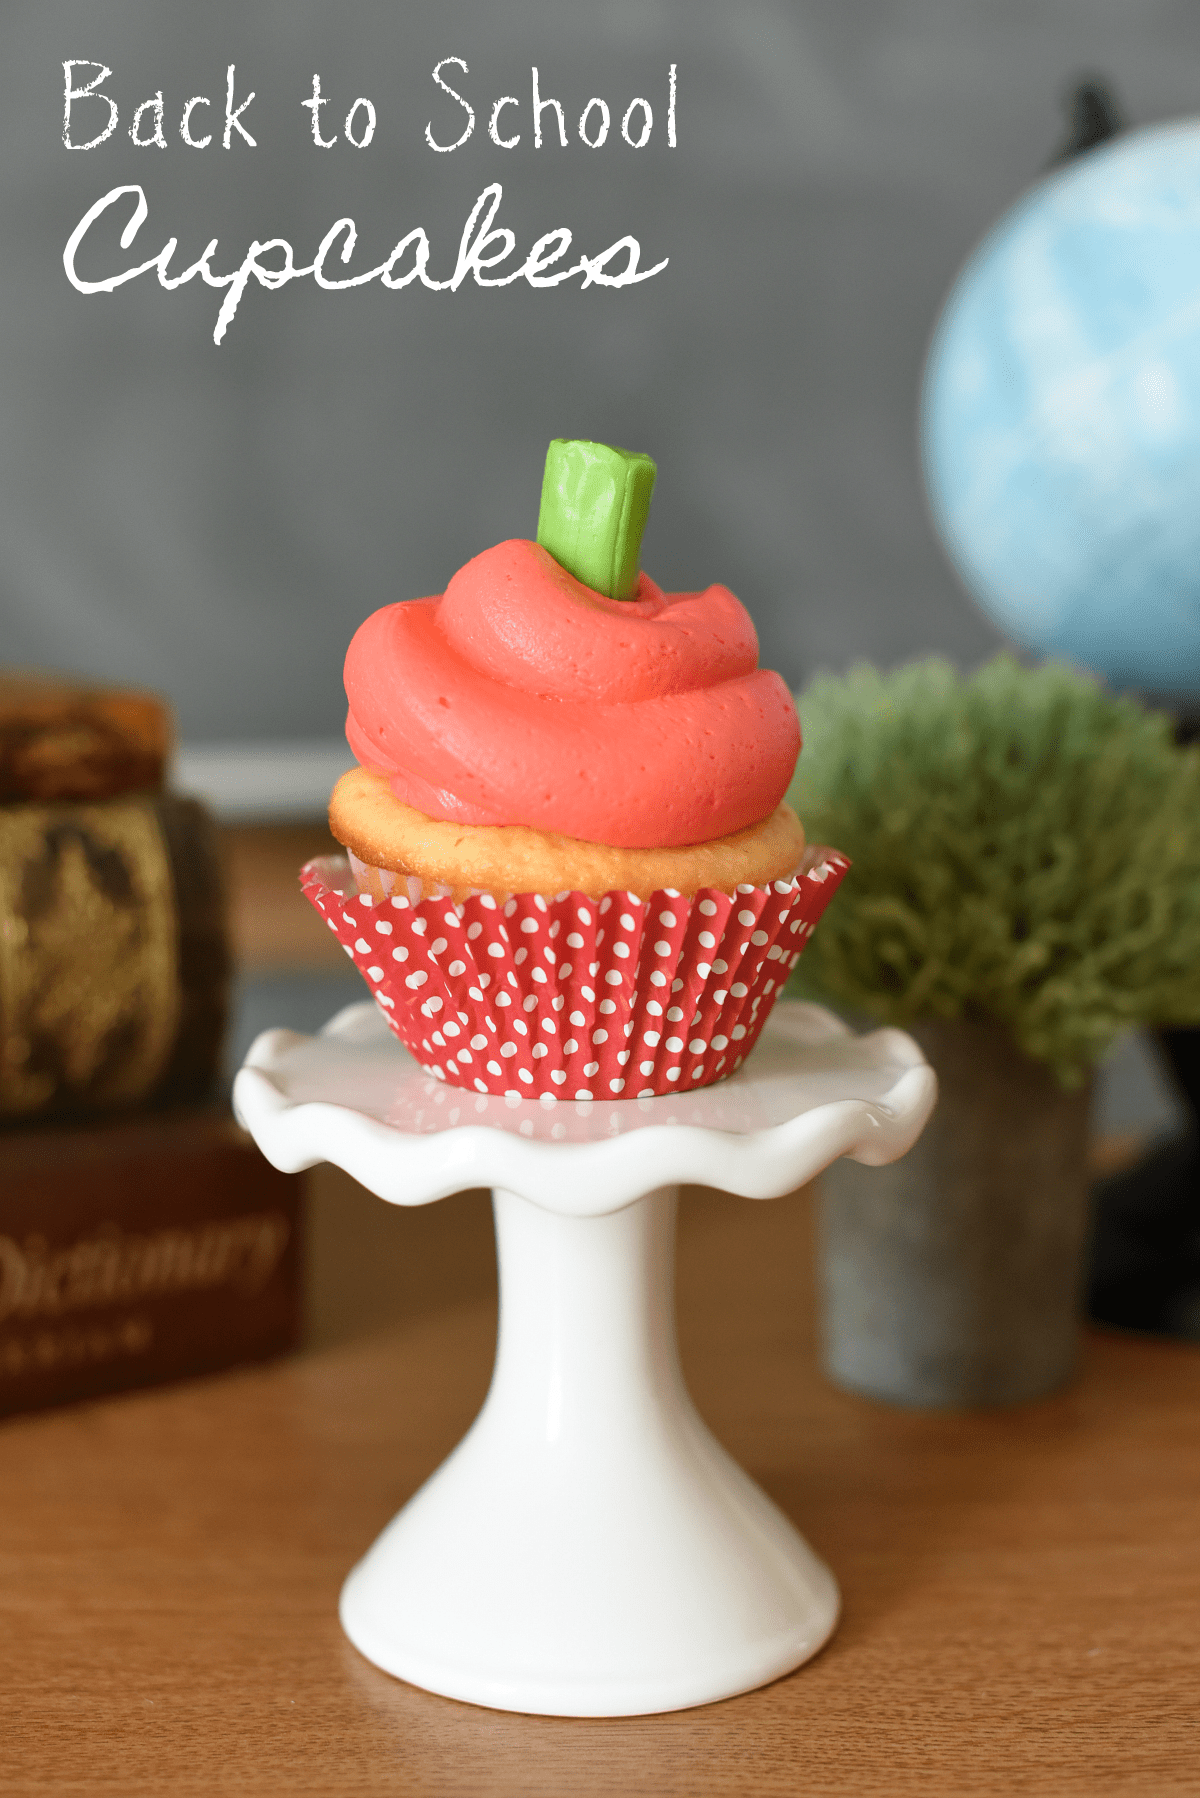 Back to School Cupcakes-Celebrate the kids' return to school with these easy to make apple cupcakes. So simple but so cute-great back to school ideas! #backtoschool #cupcakes